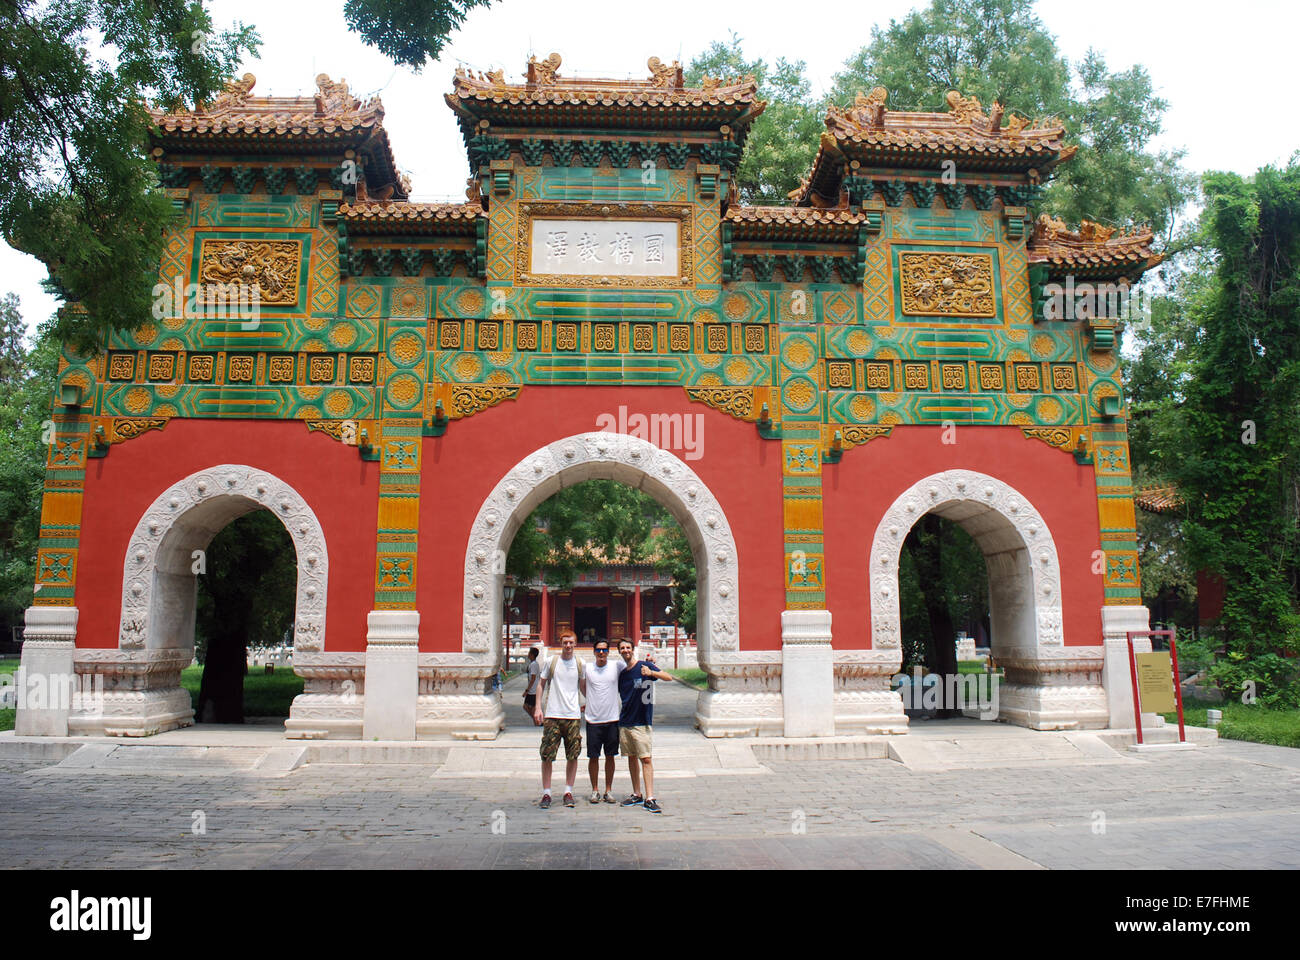 Allievi occidentali, il Tempio di Confucio Pechino, Cina 2014 Foto Stock